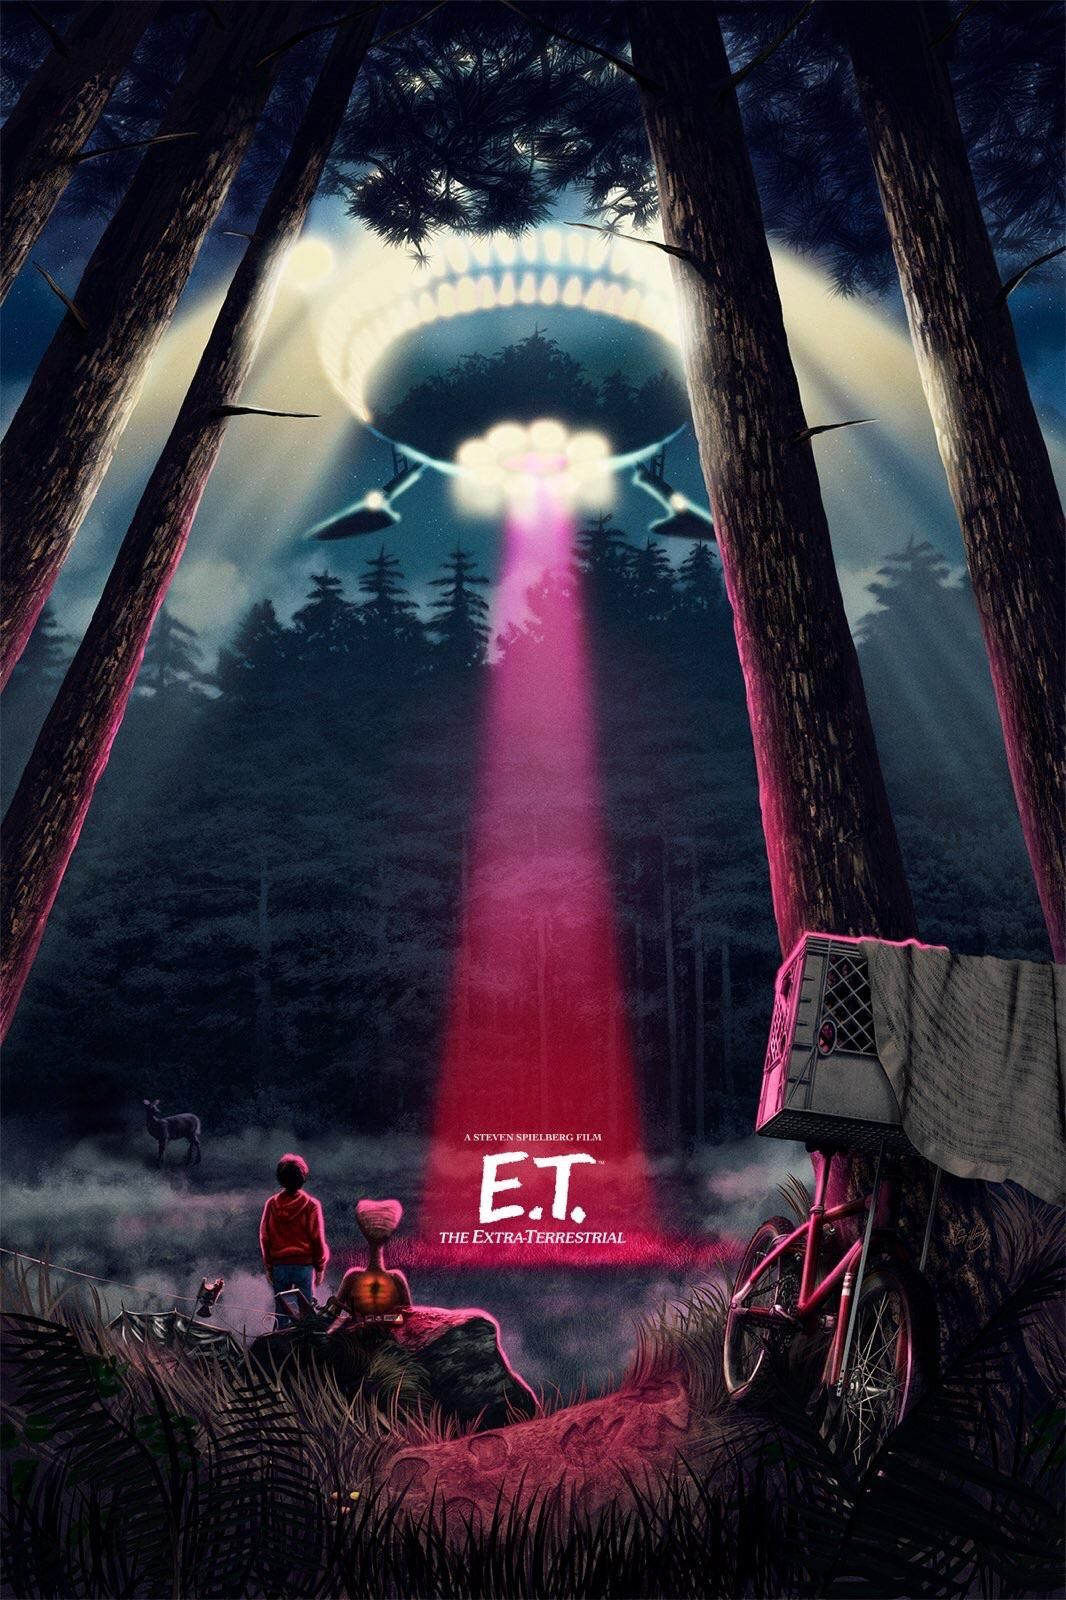 the extra terrestrial